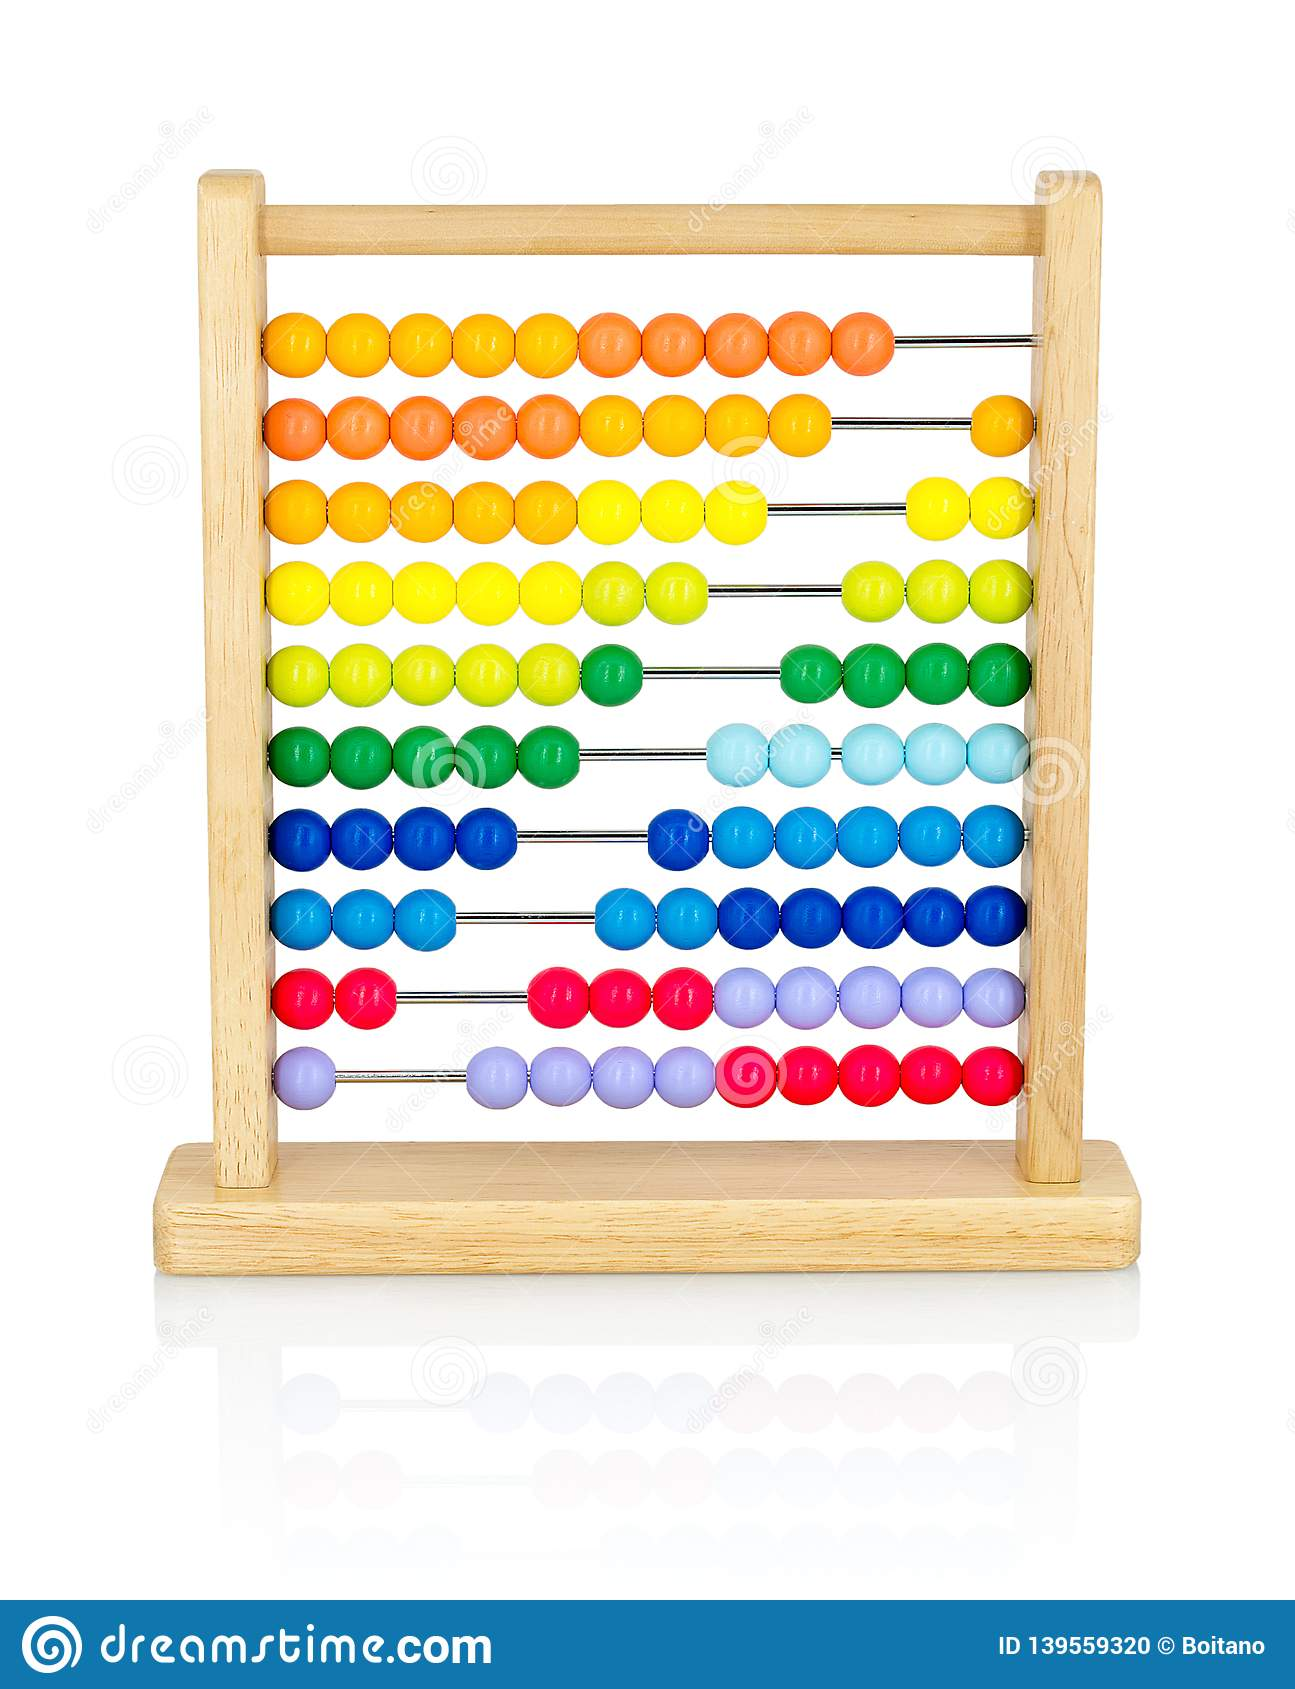 Wooden colorful abacus for kids isolated on white background with shadow reflection.